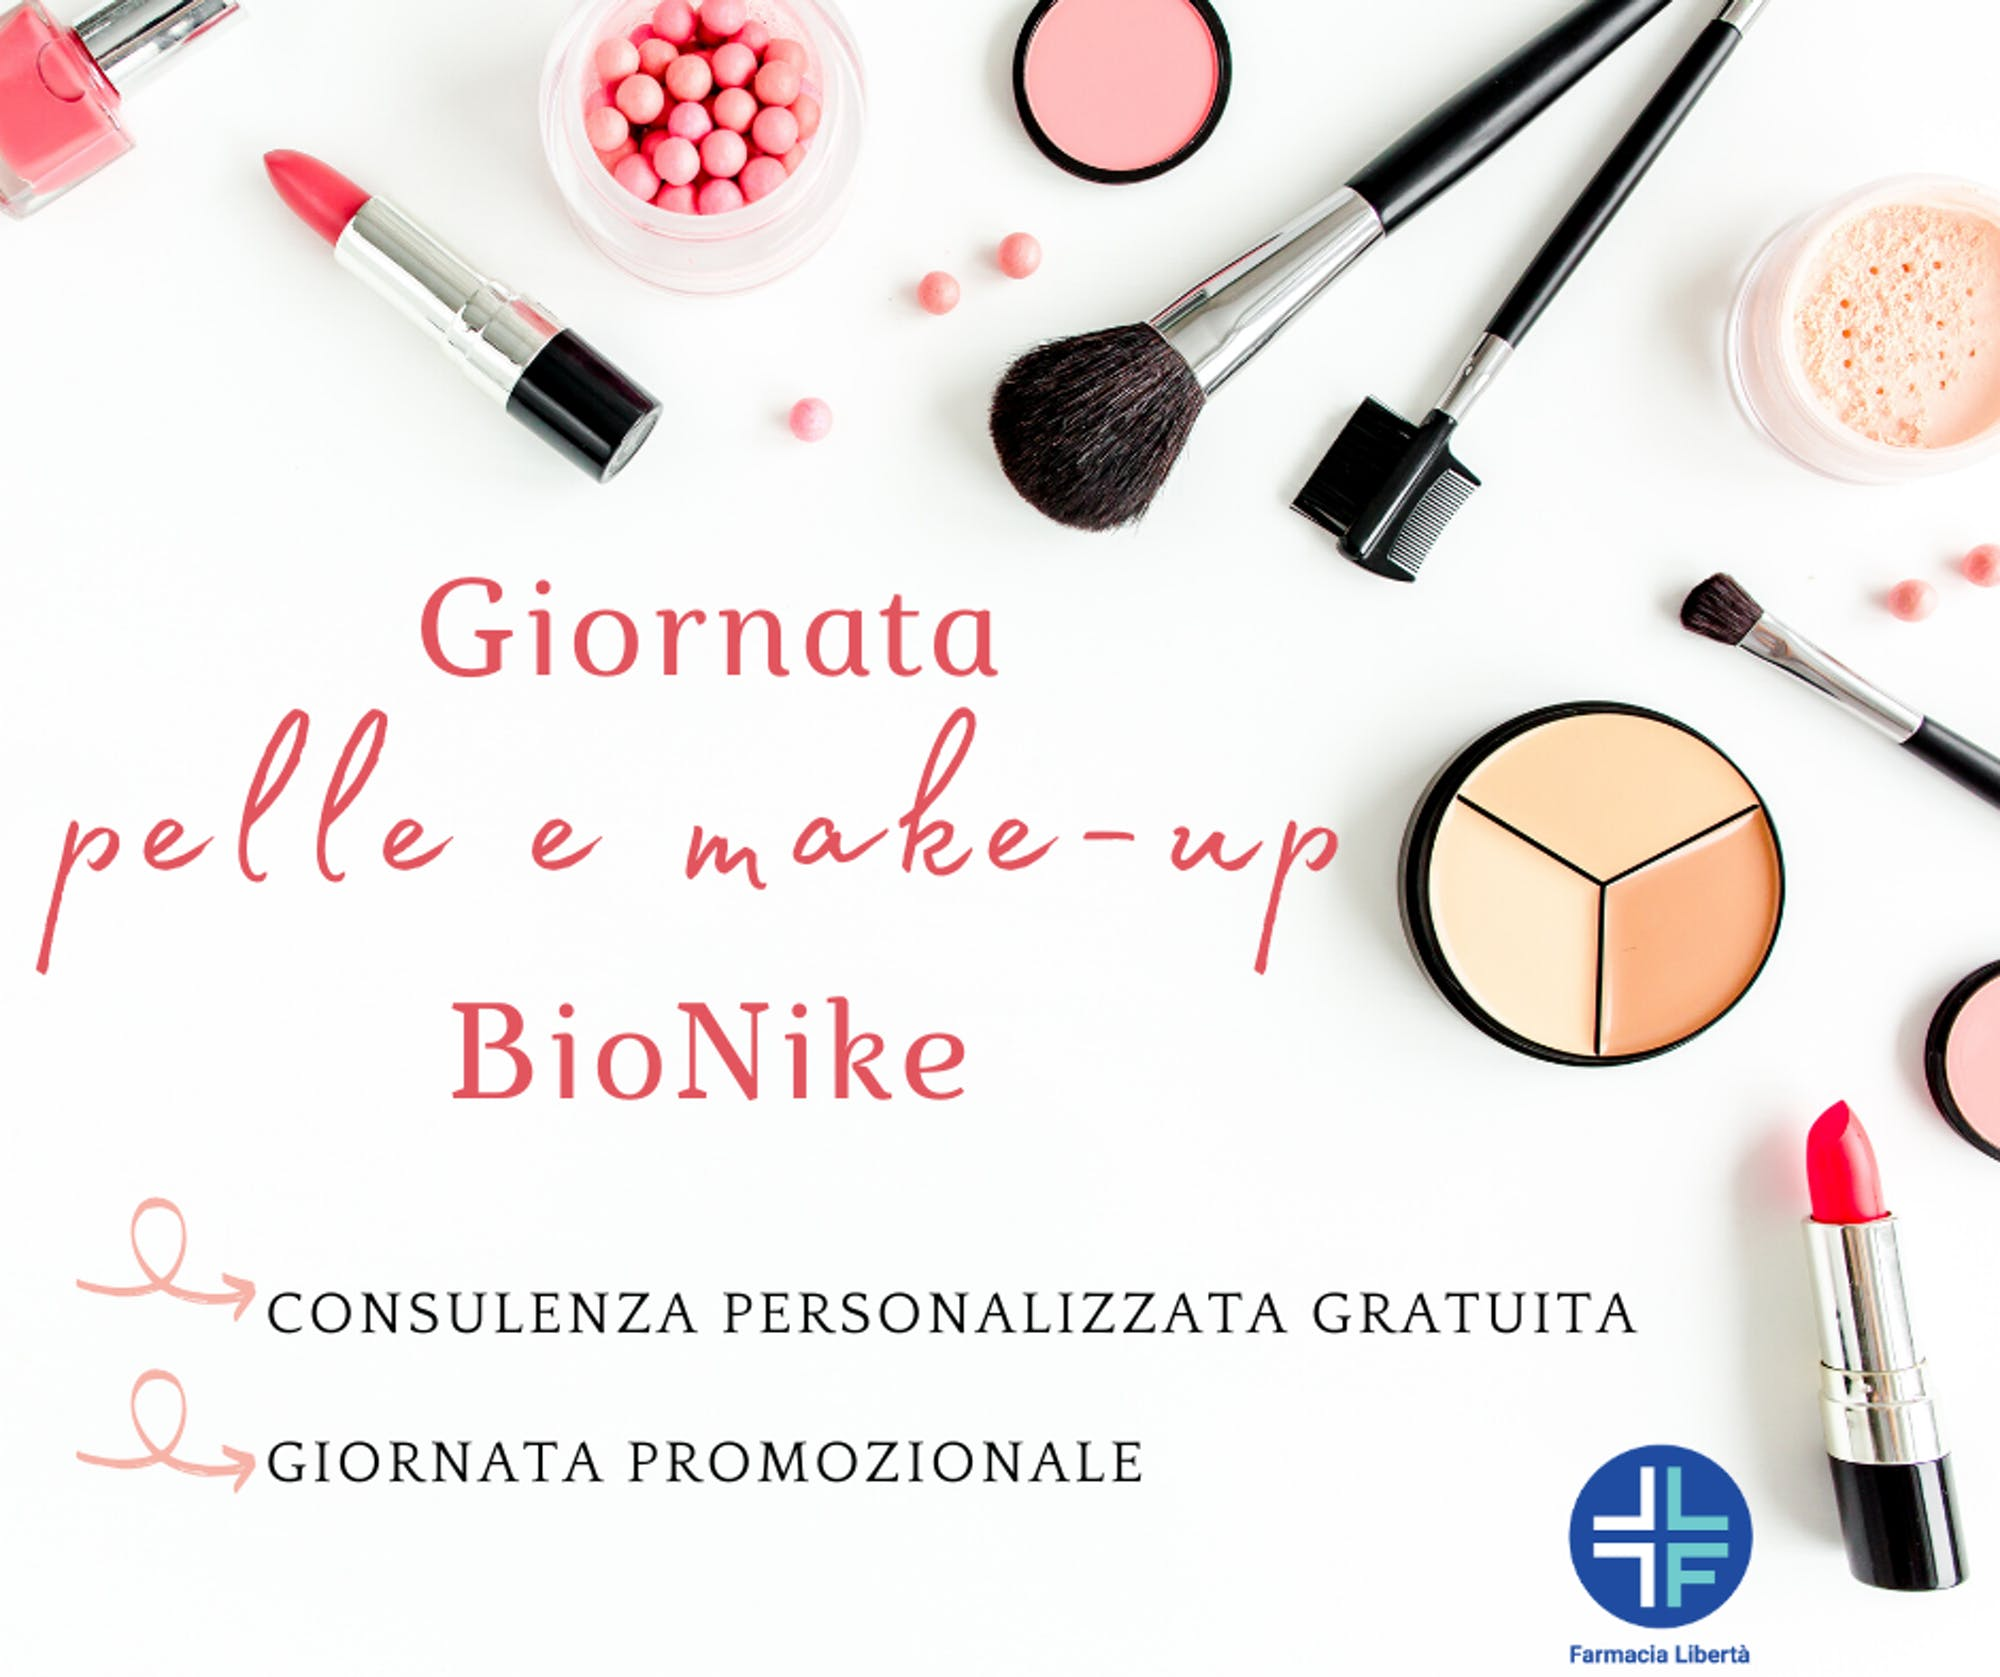 Giornata pelle e make-up Bionike Farmacia Libertà